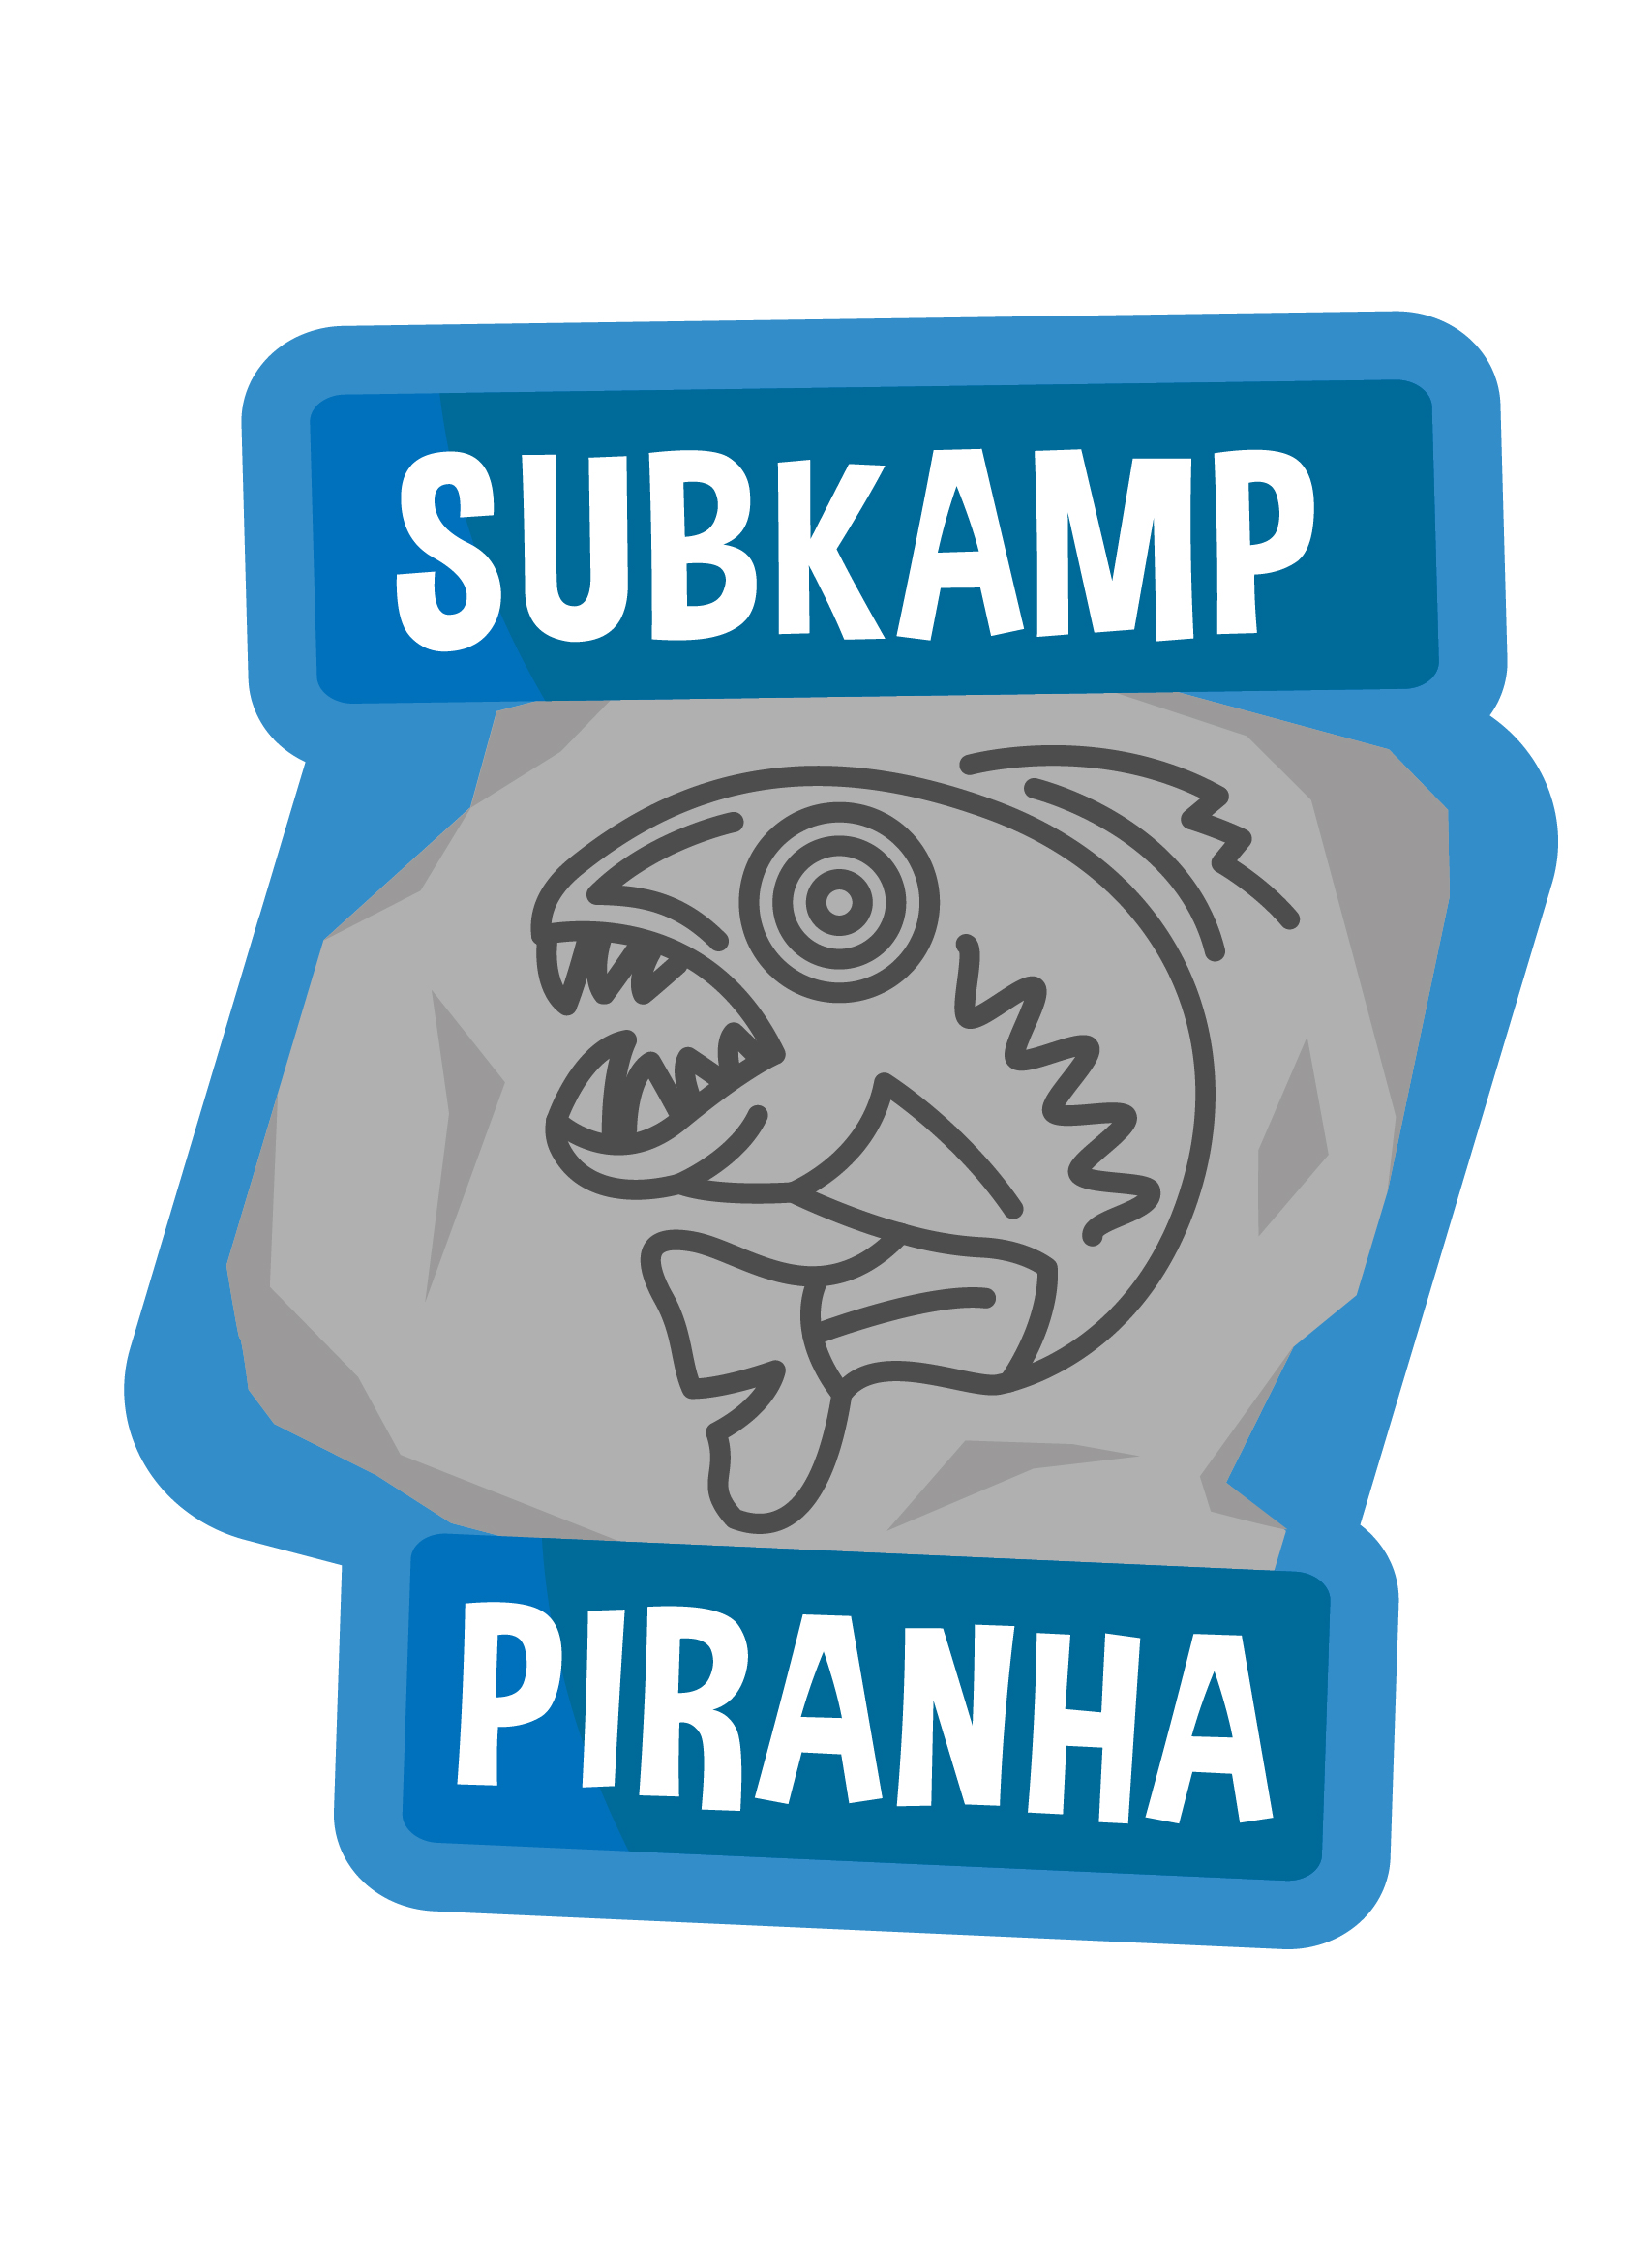 subkamp logos piranha color 1